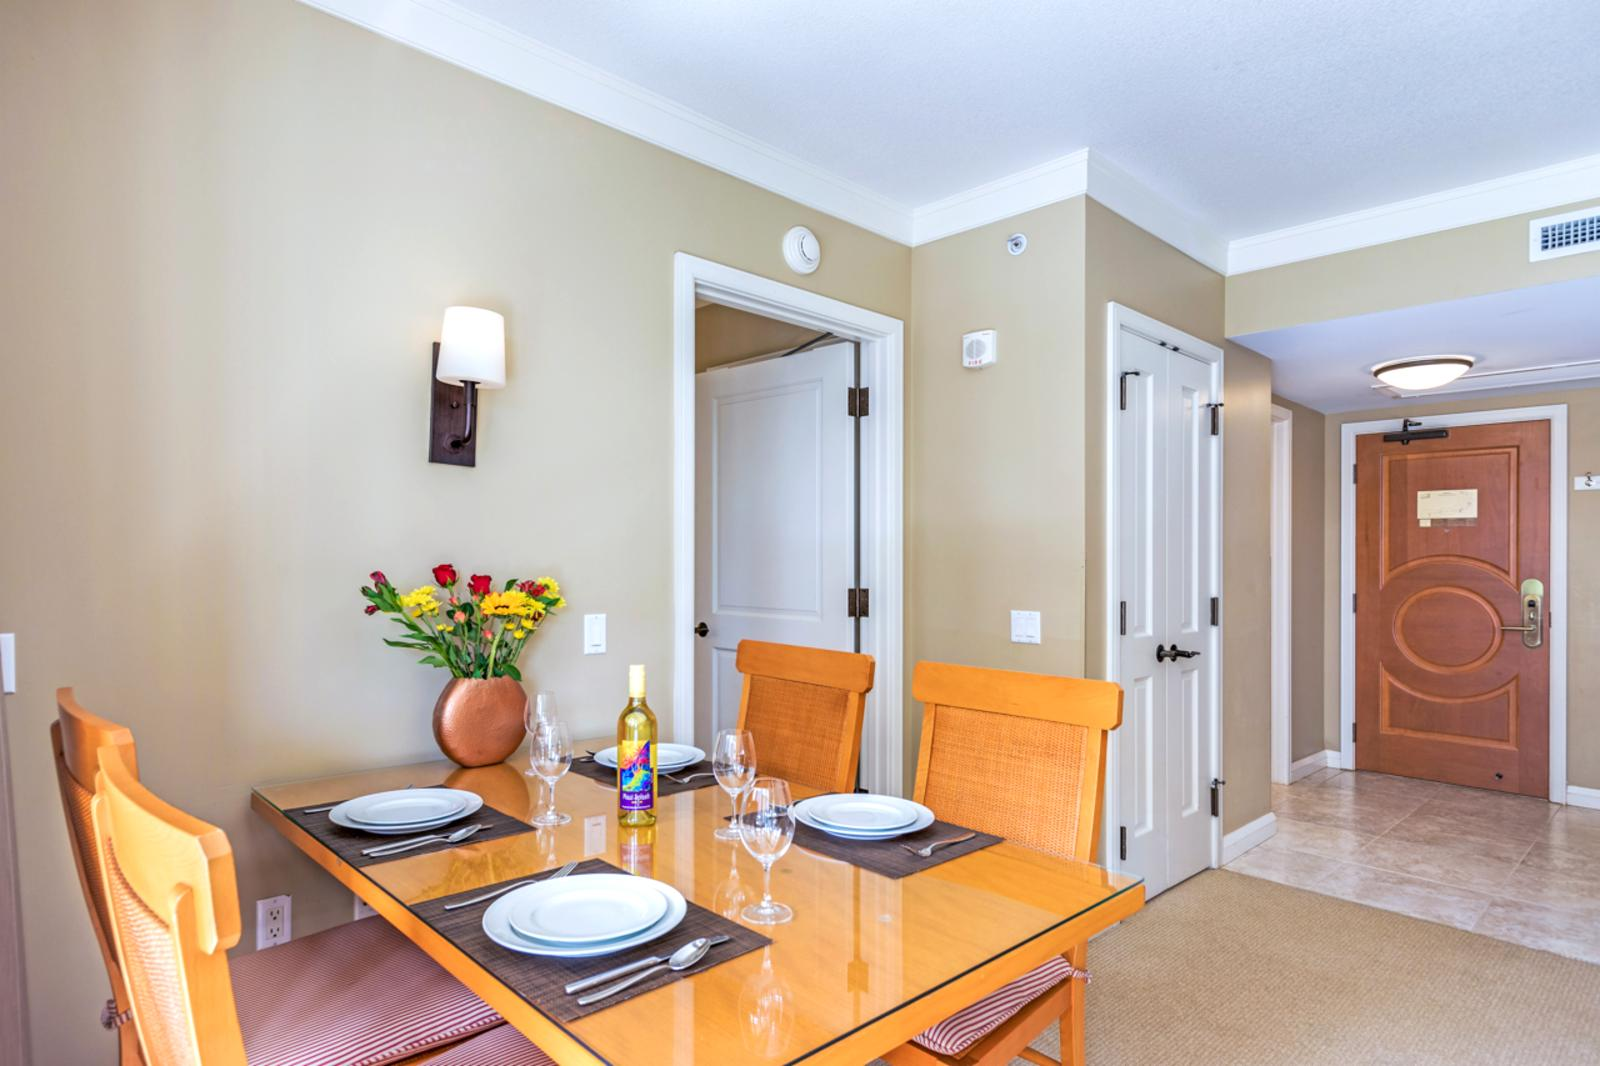 Formal dining seating for (4)